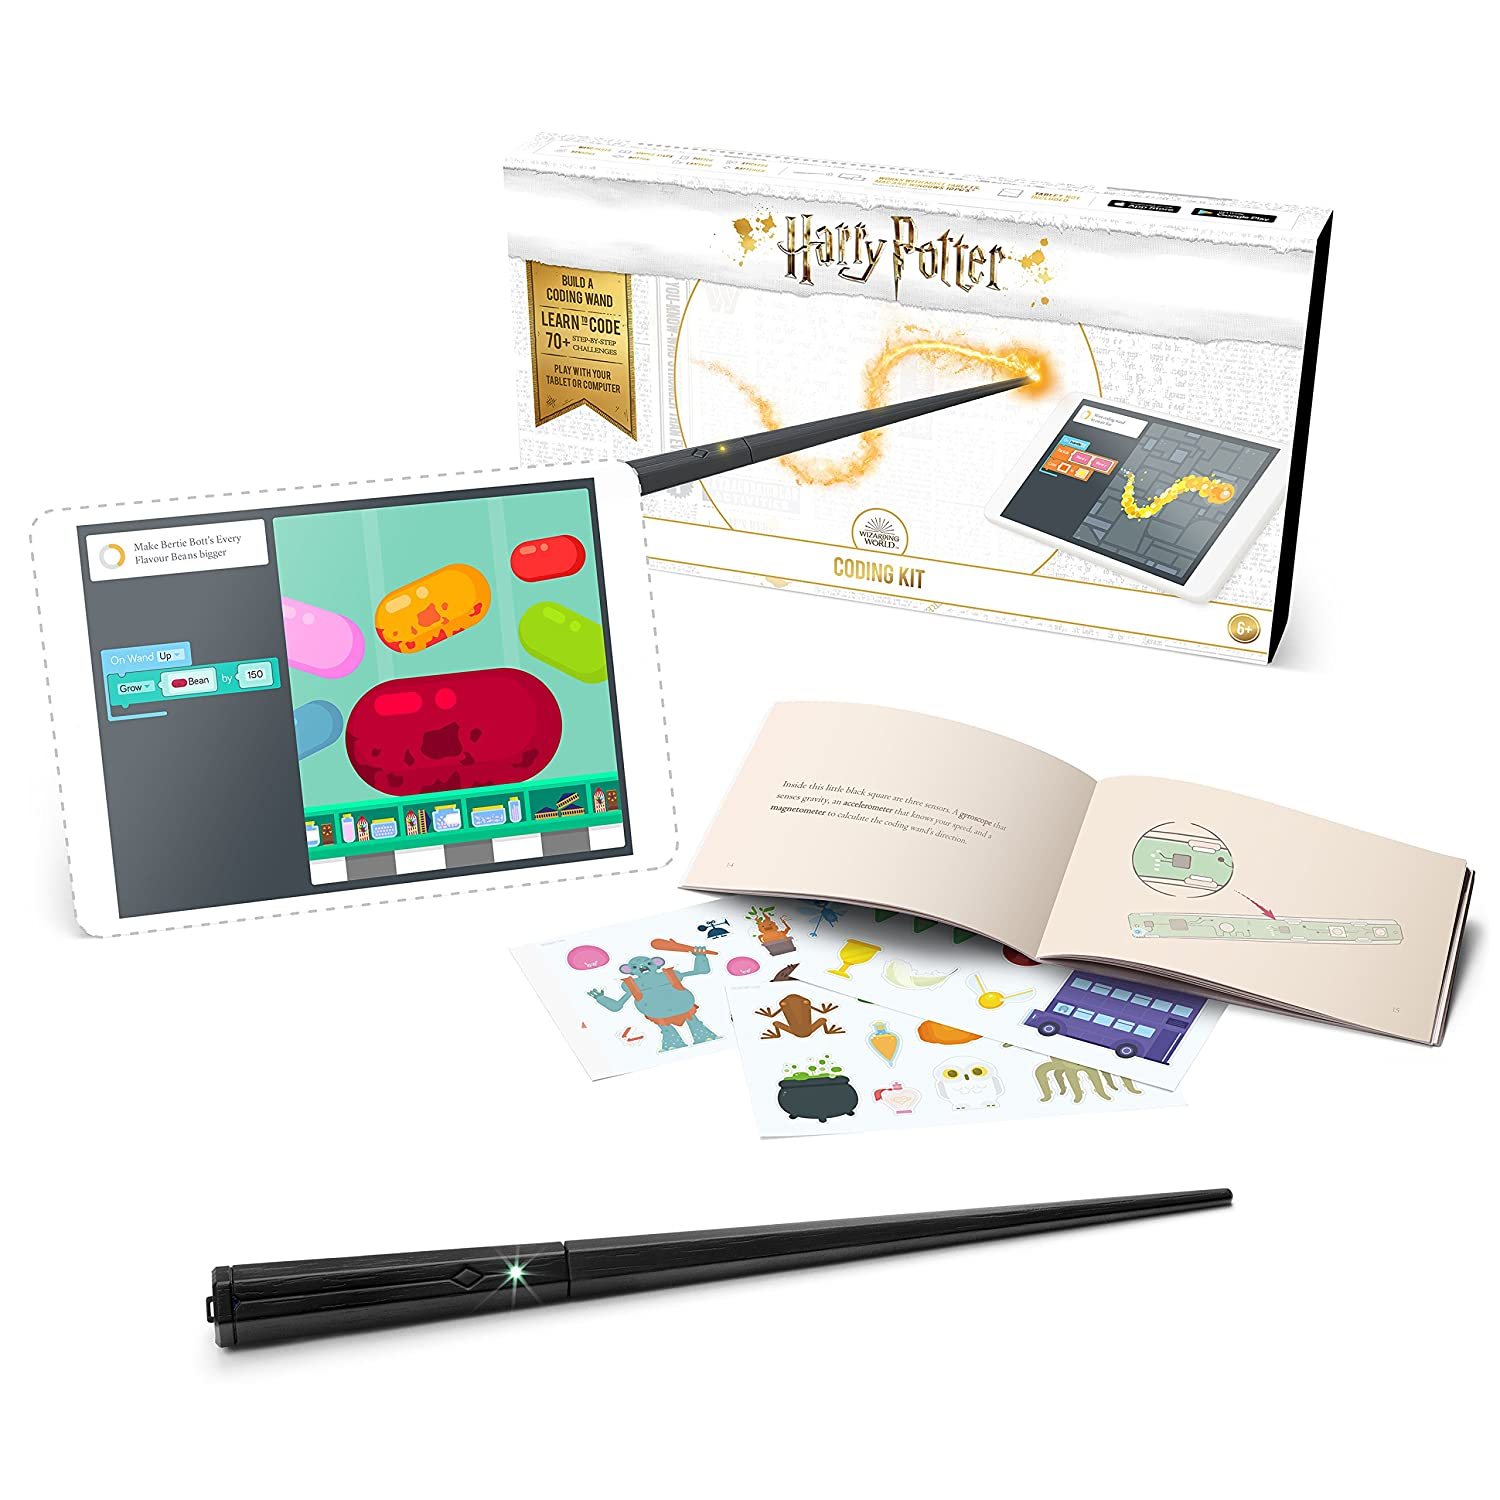 Kano Harry Potter Coding Kit – Build a Wand. Learn To Code. Make Magic. 1007